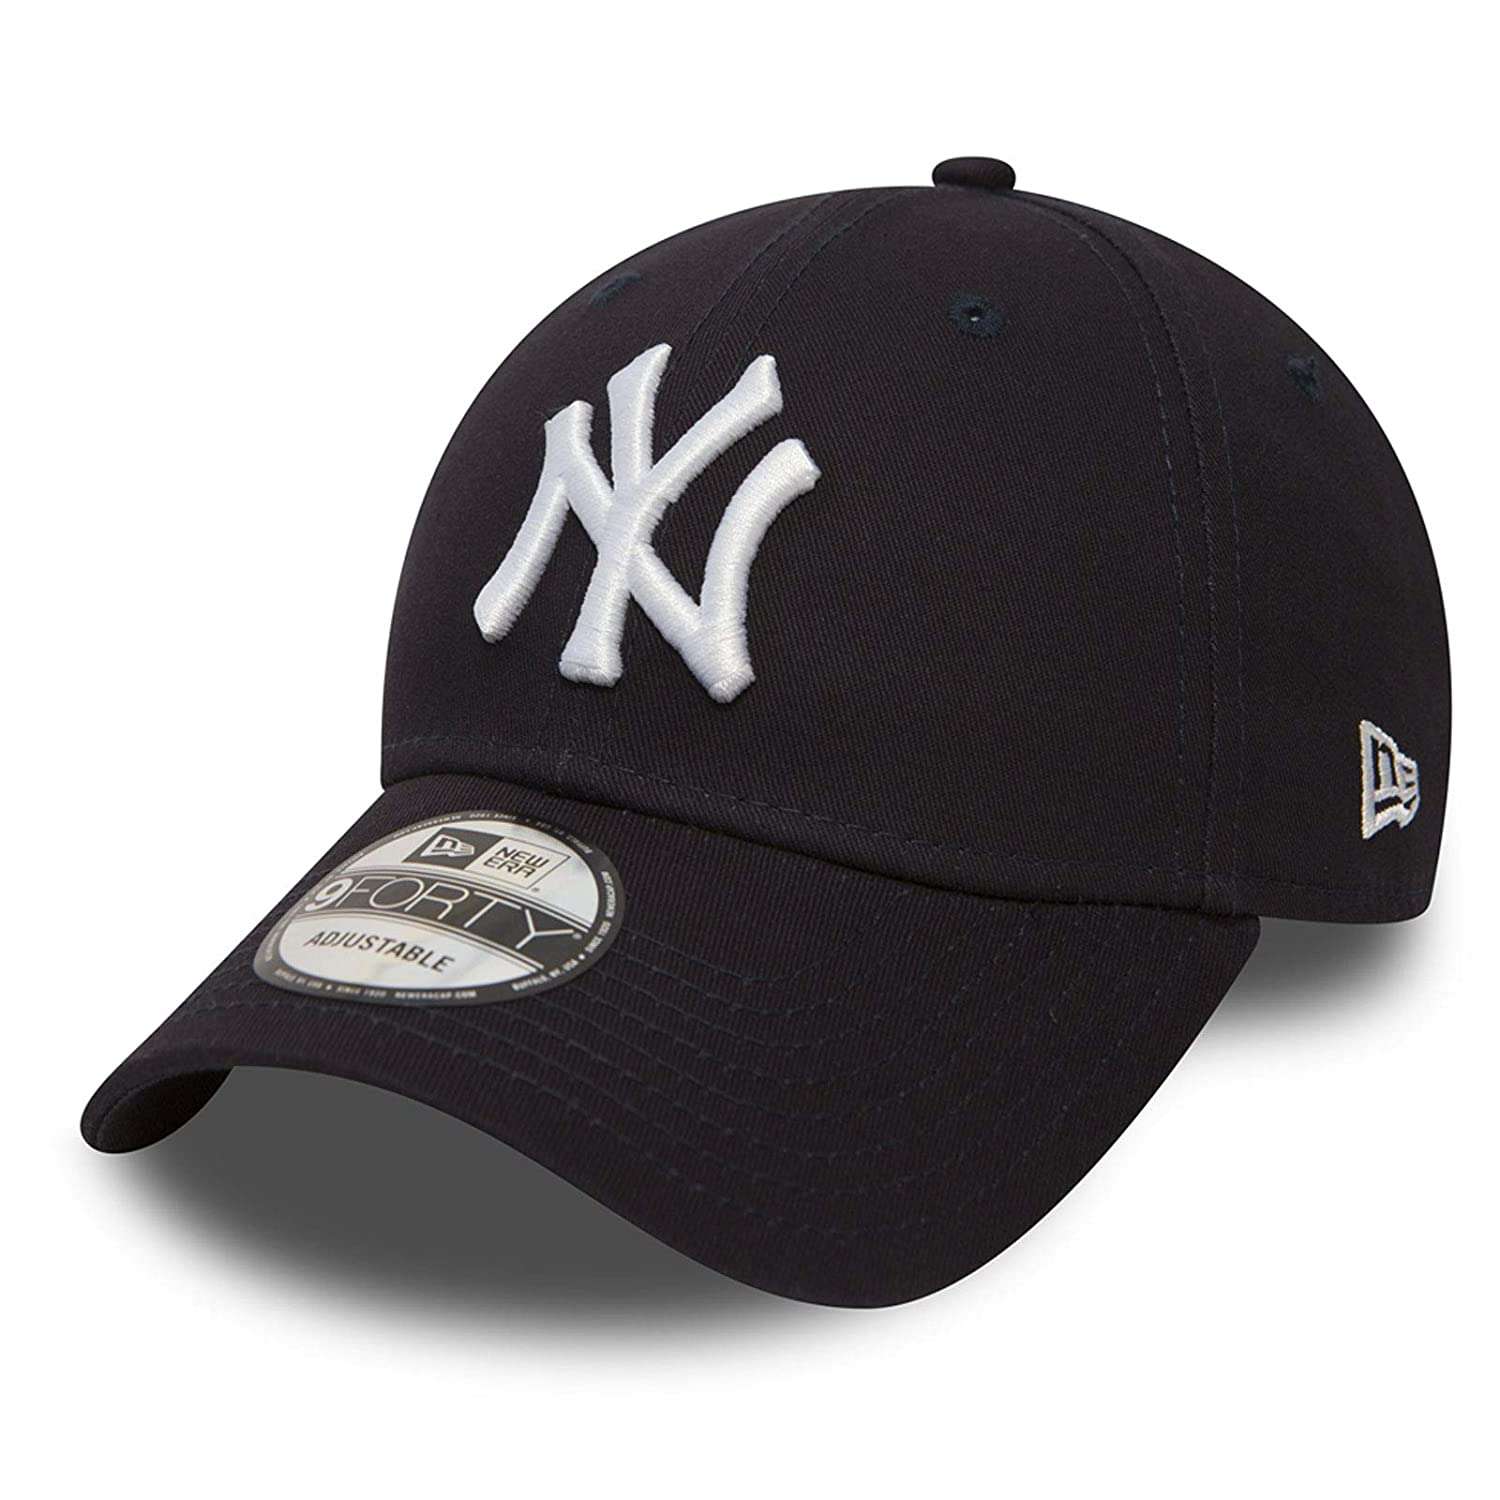 NE/_UD New Era 9forty Strapback Cappello MLB New York Yankees Los Angeles Dodgers Uomo Donna Cappello Berretto Cappello Diversi Colori Im Bundle Bandana